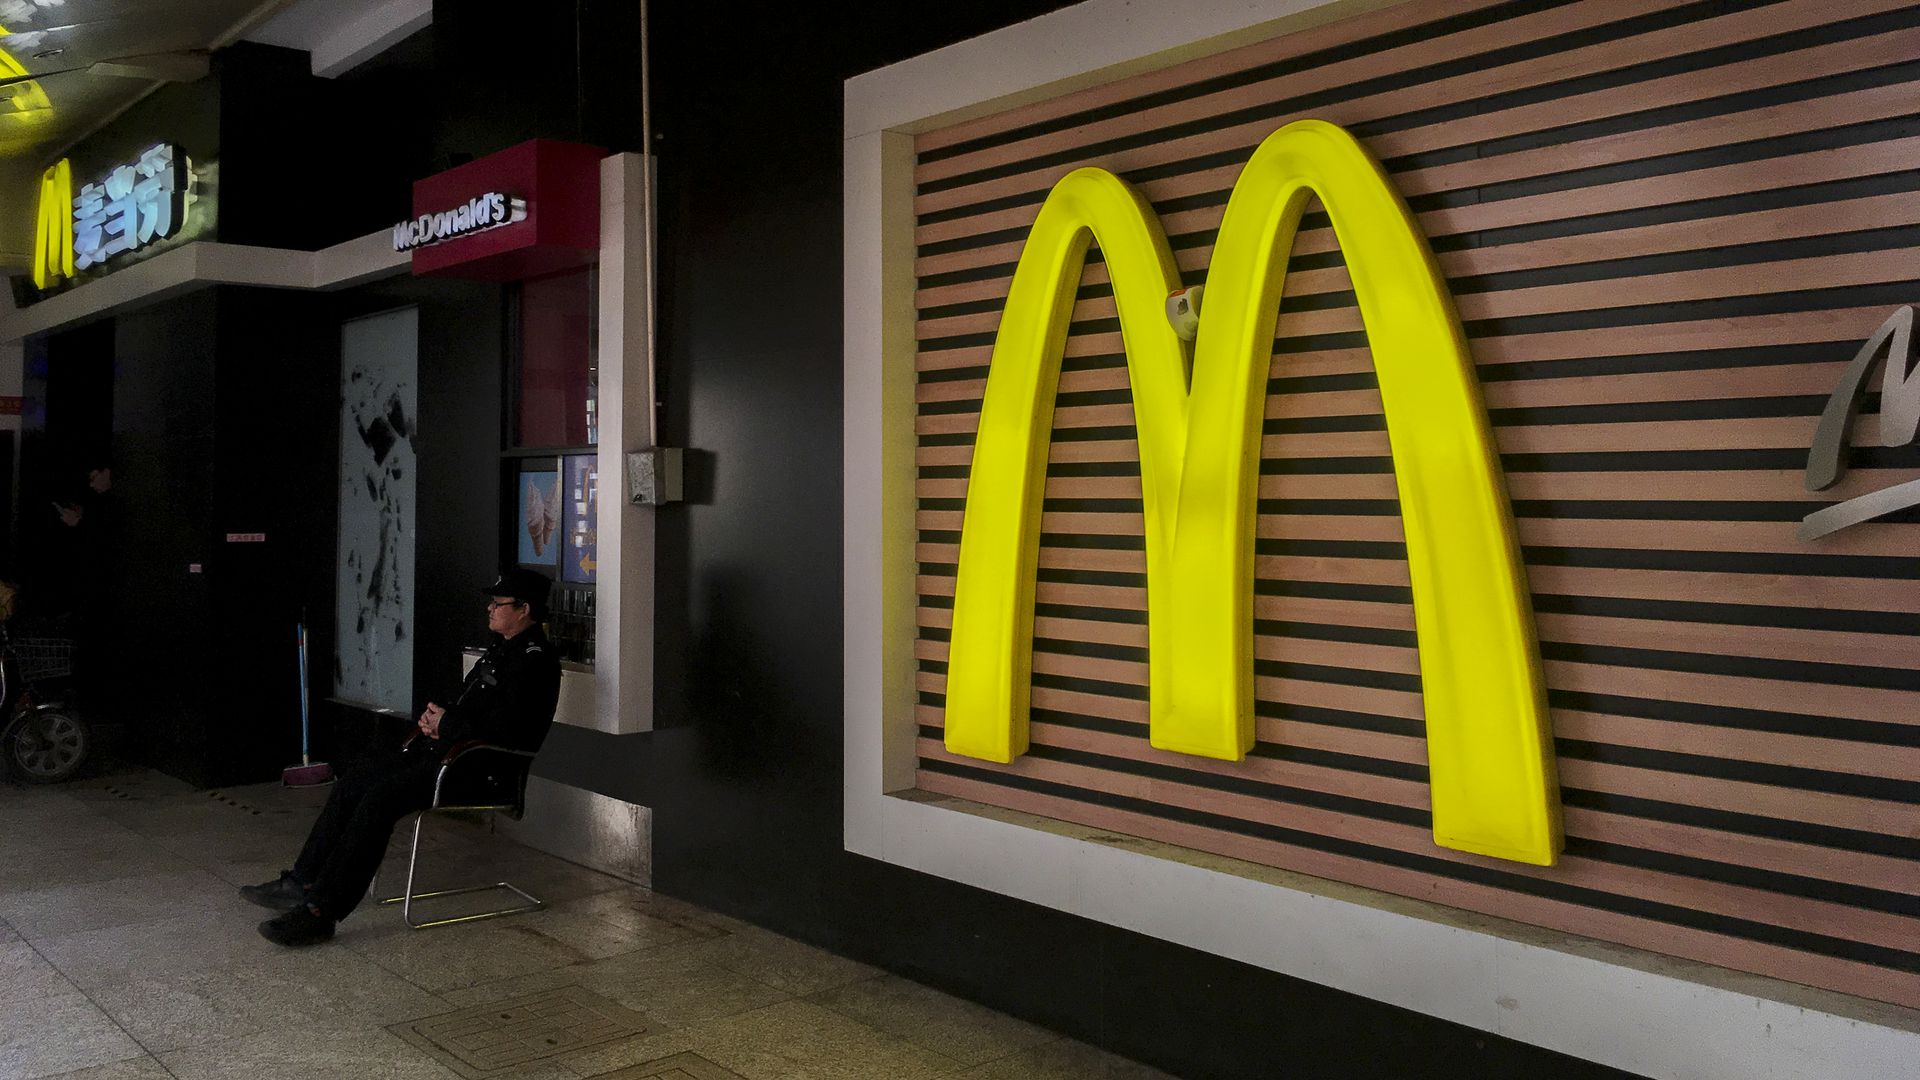 Logo on the wall of a McDonald's restaurant.